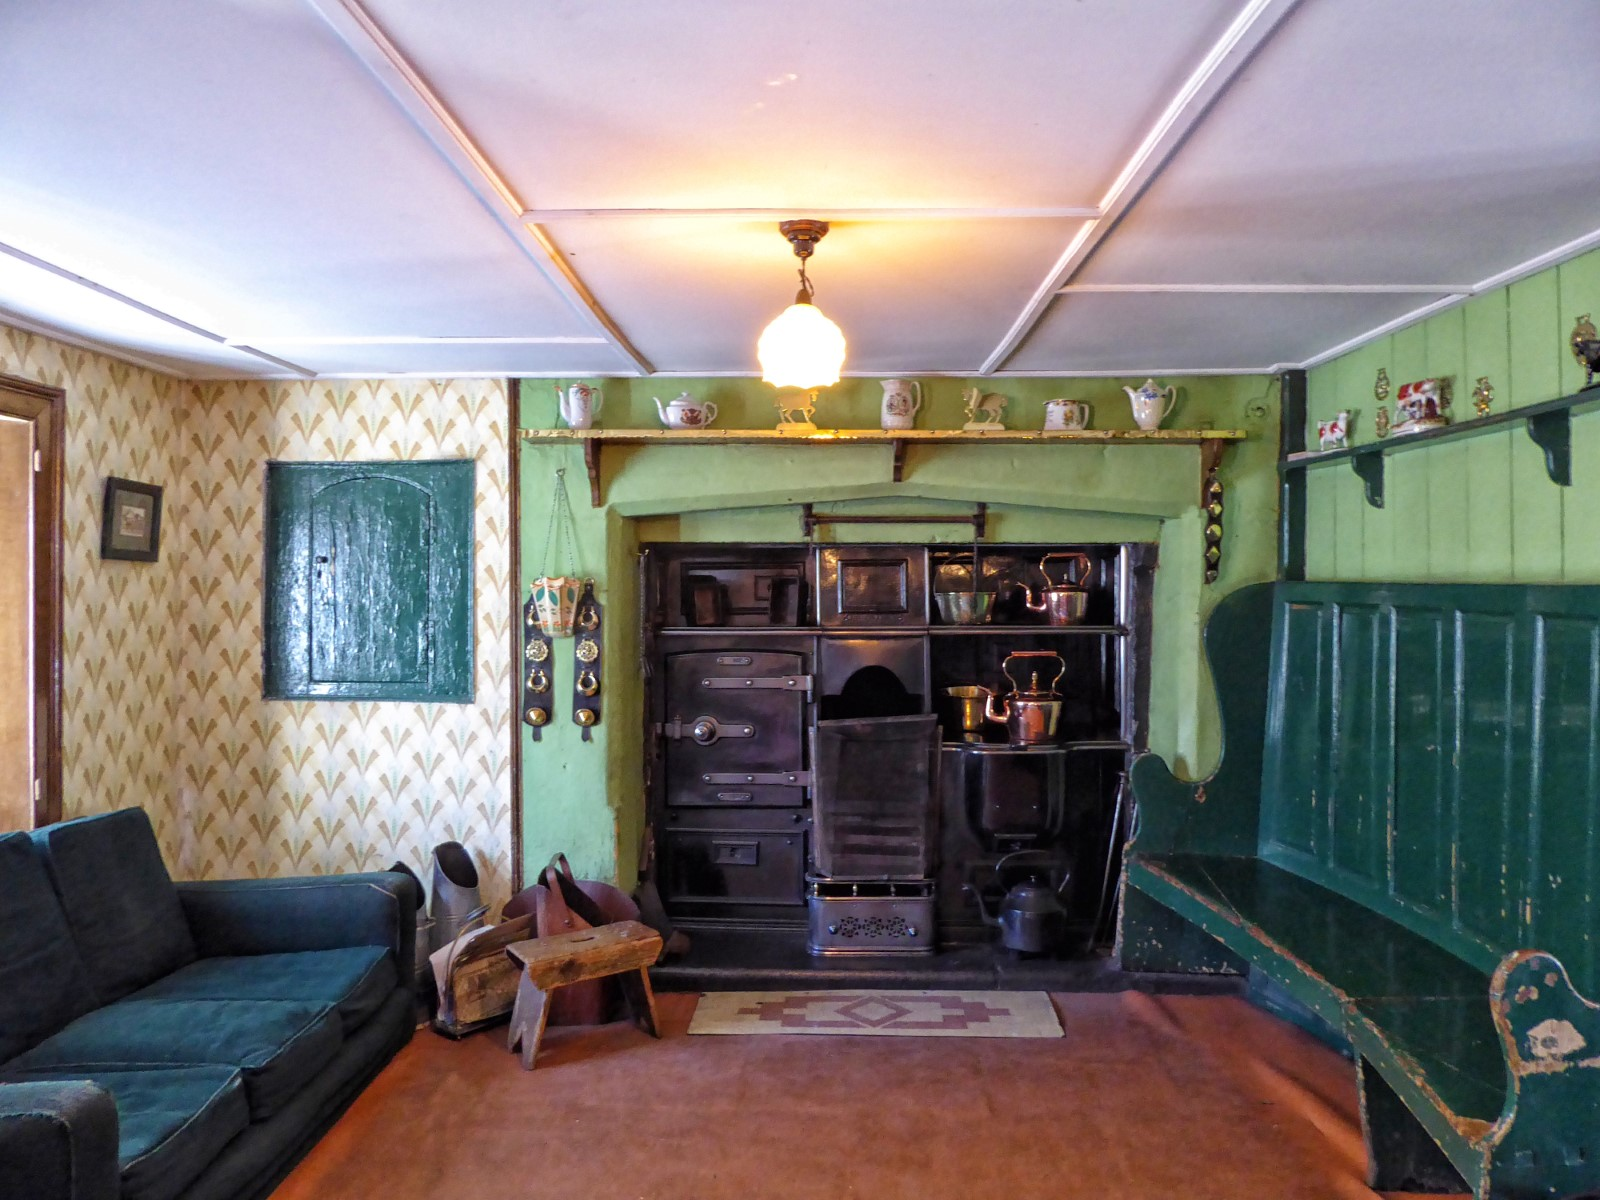 Old-fashioned room with range and green wood furniture